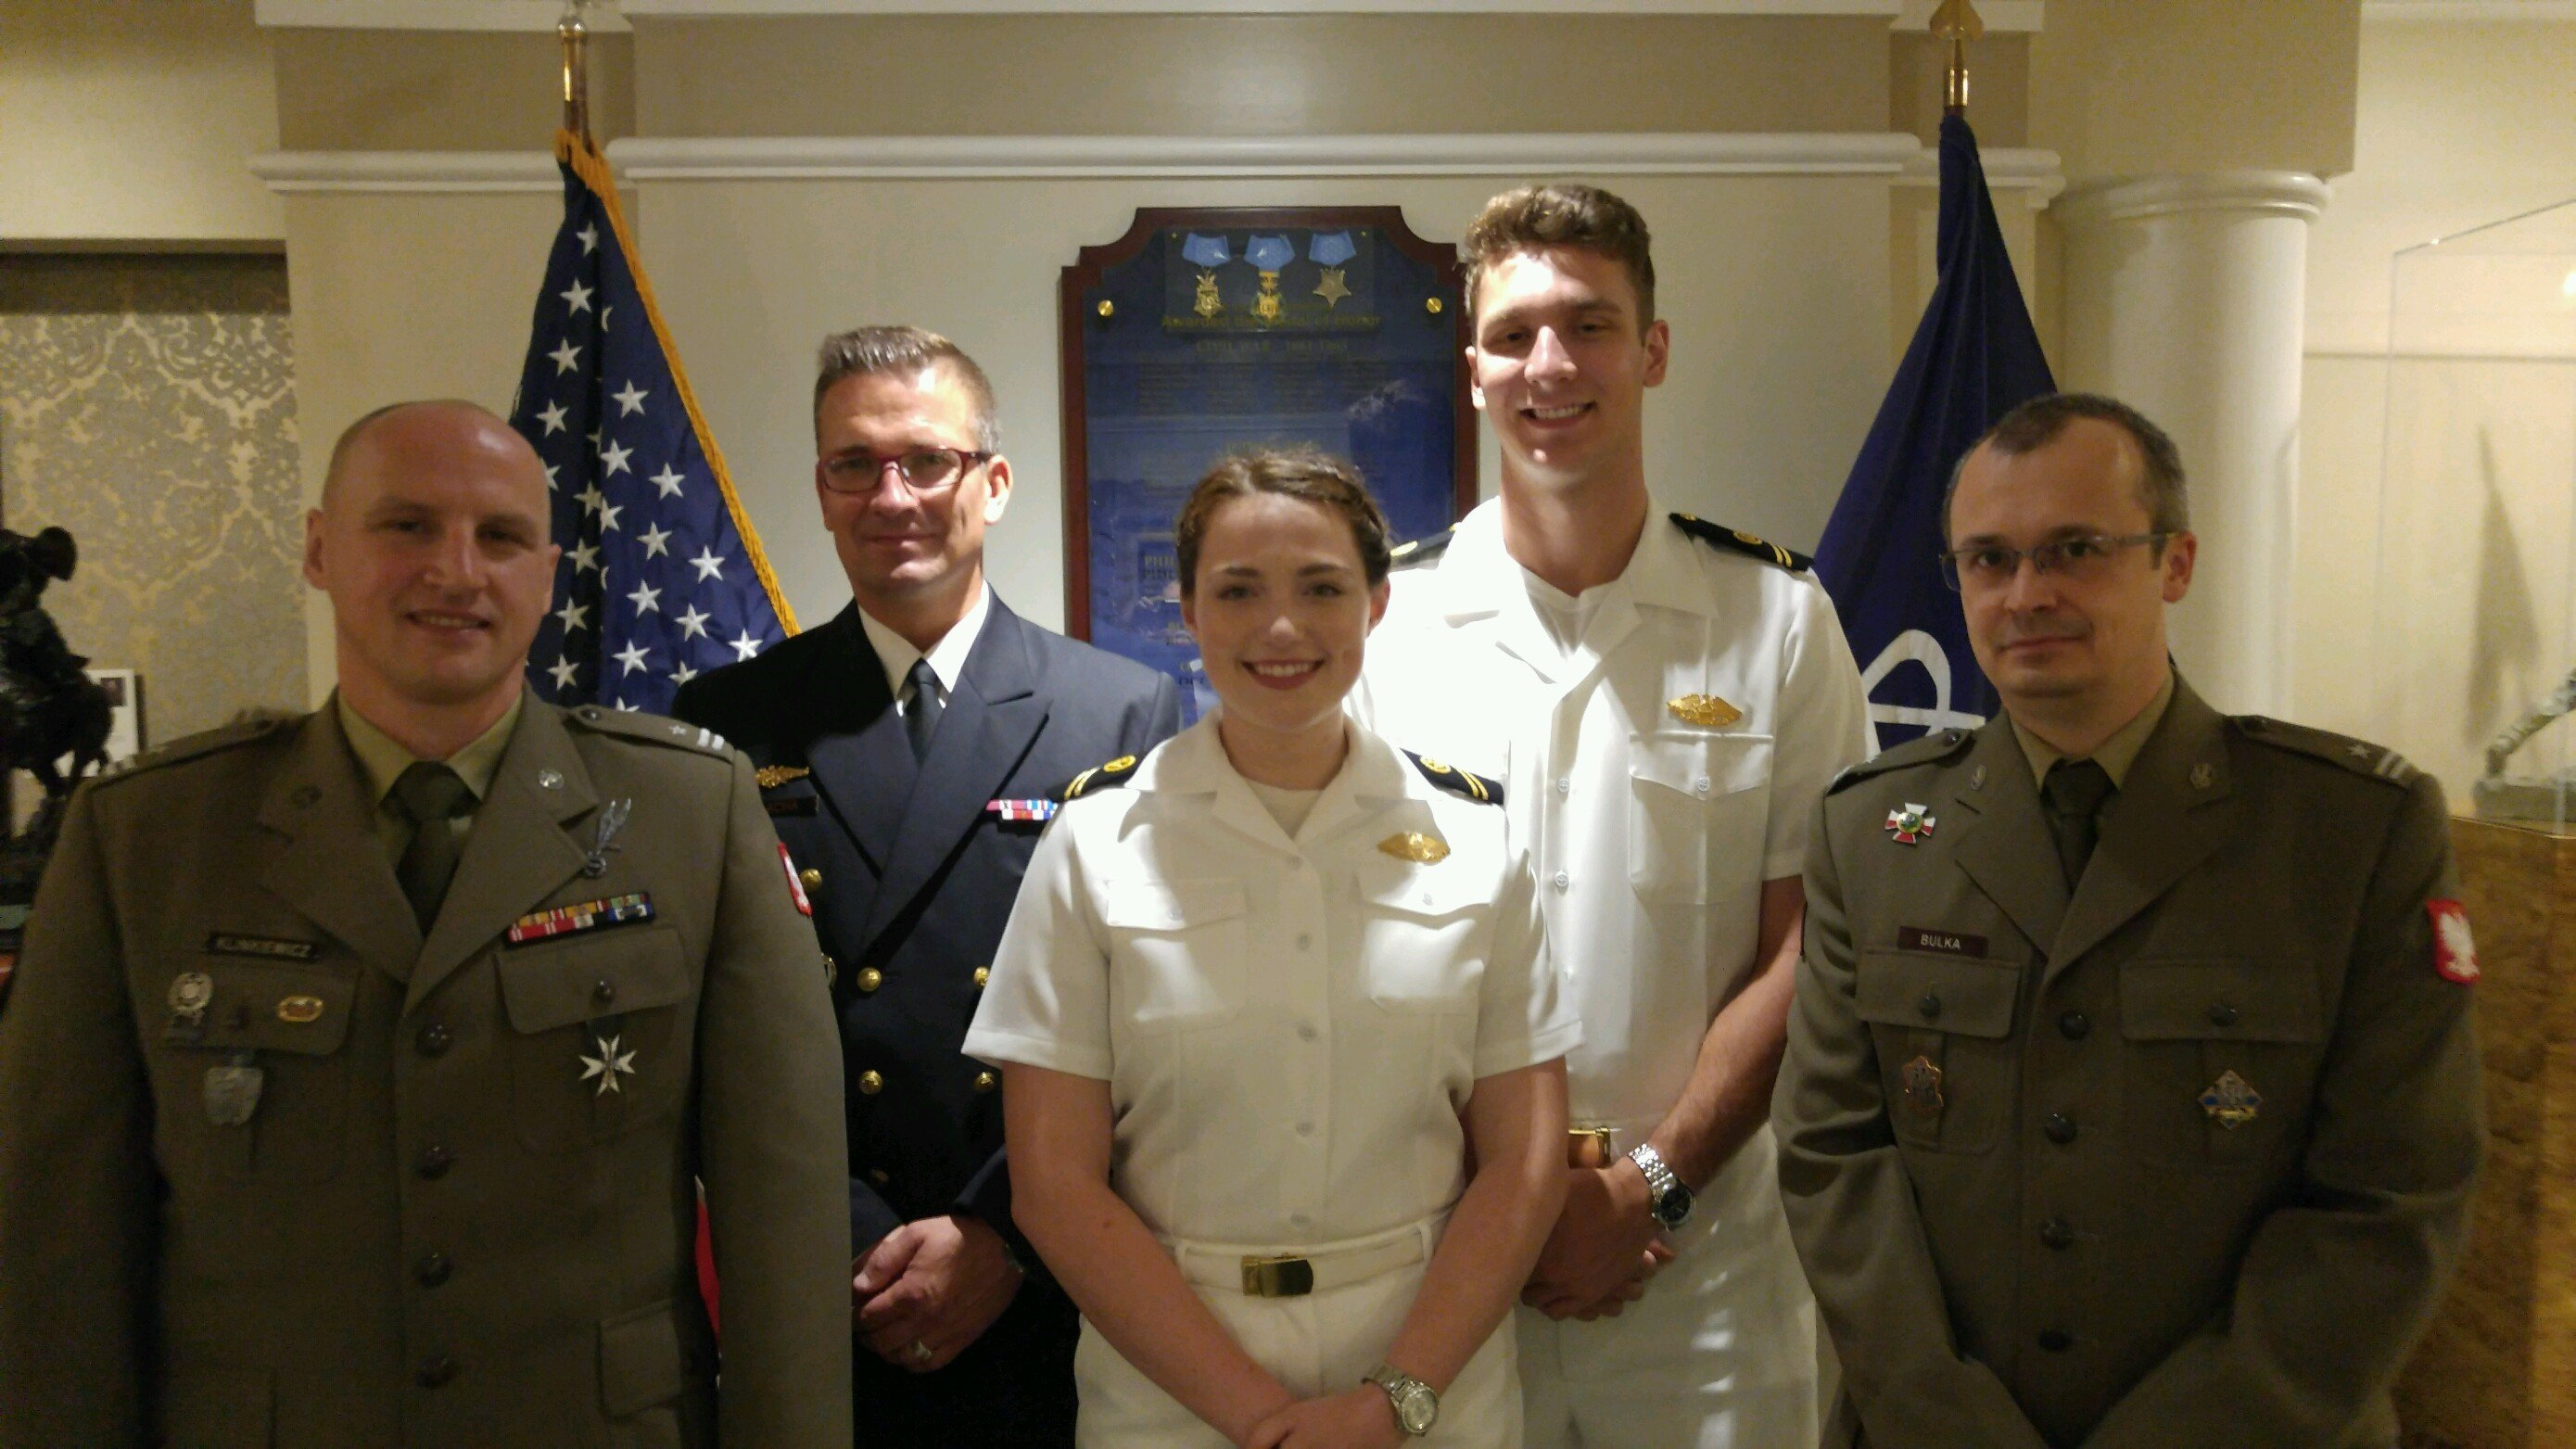 Midshipmen McFadyen and Quigley with IWP Sr. Polish Ministry of Defense Fellows at the Army Navy Club, Washington, D.C.